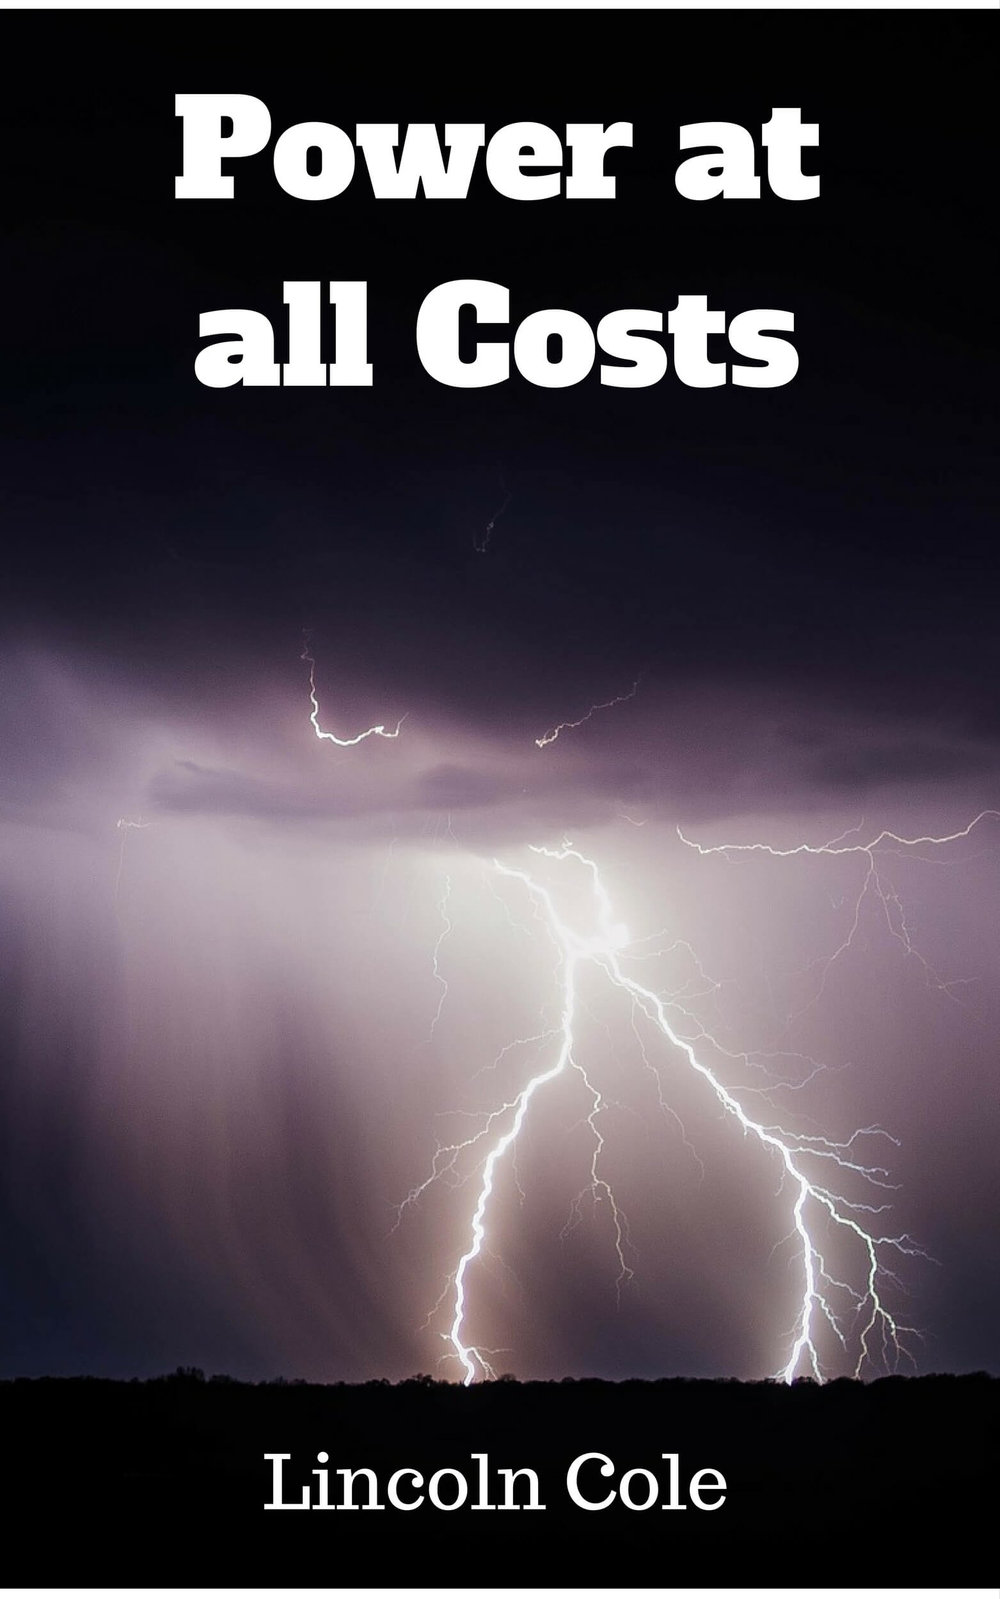 Power at all Costs - A short story about the dangers of using untested methods for powering our world.